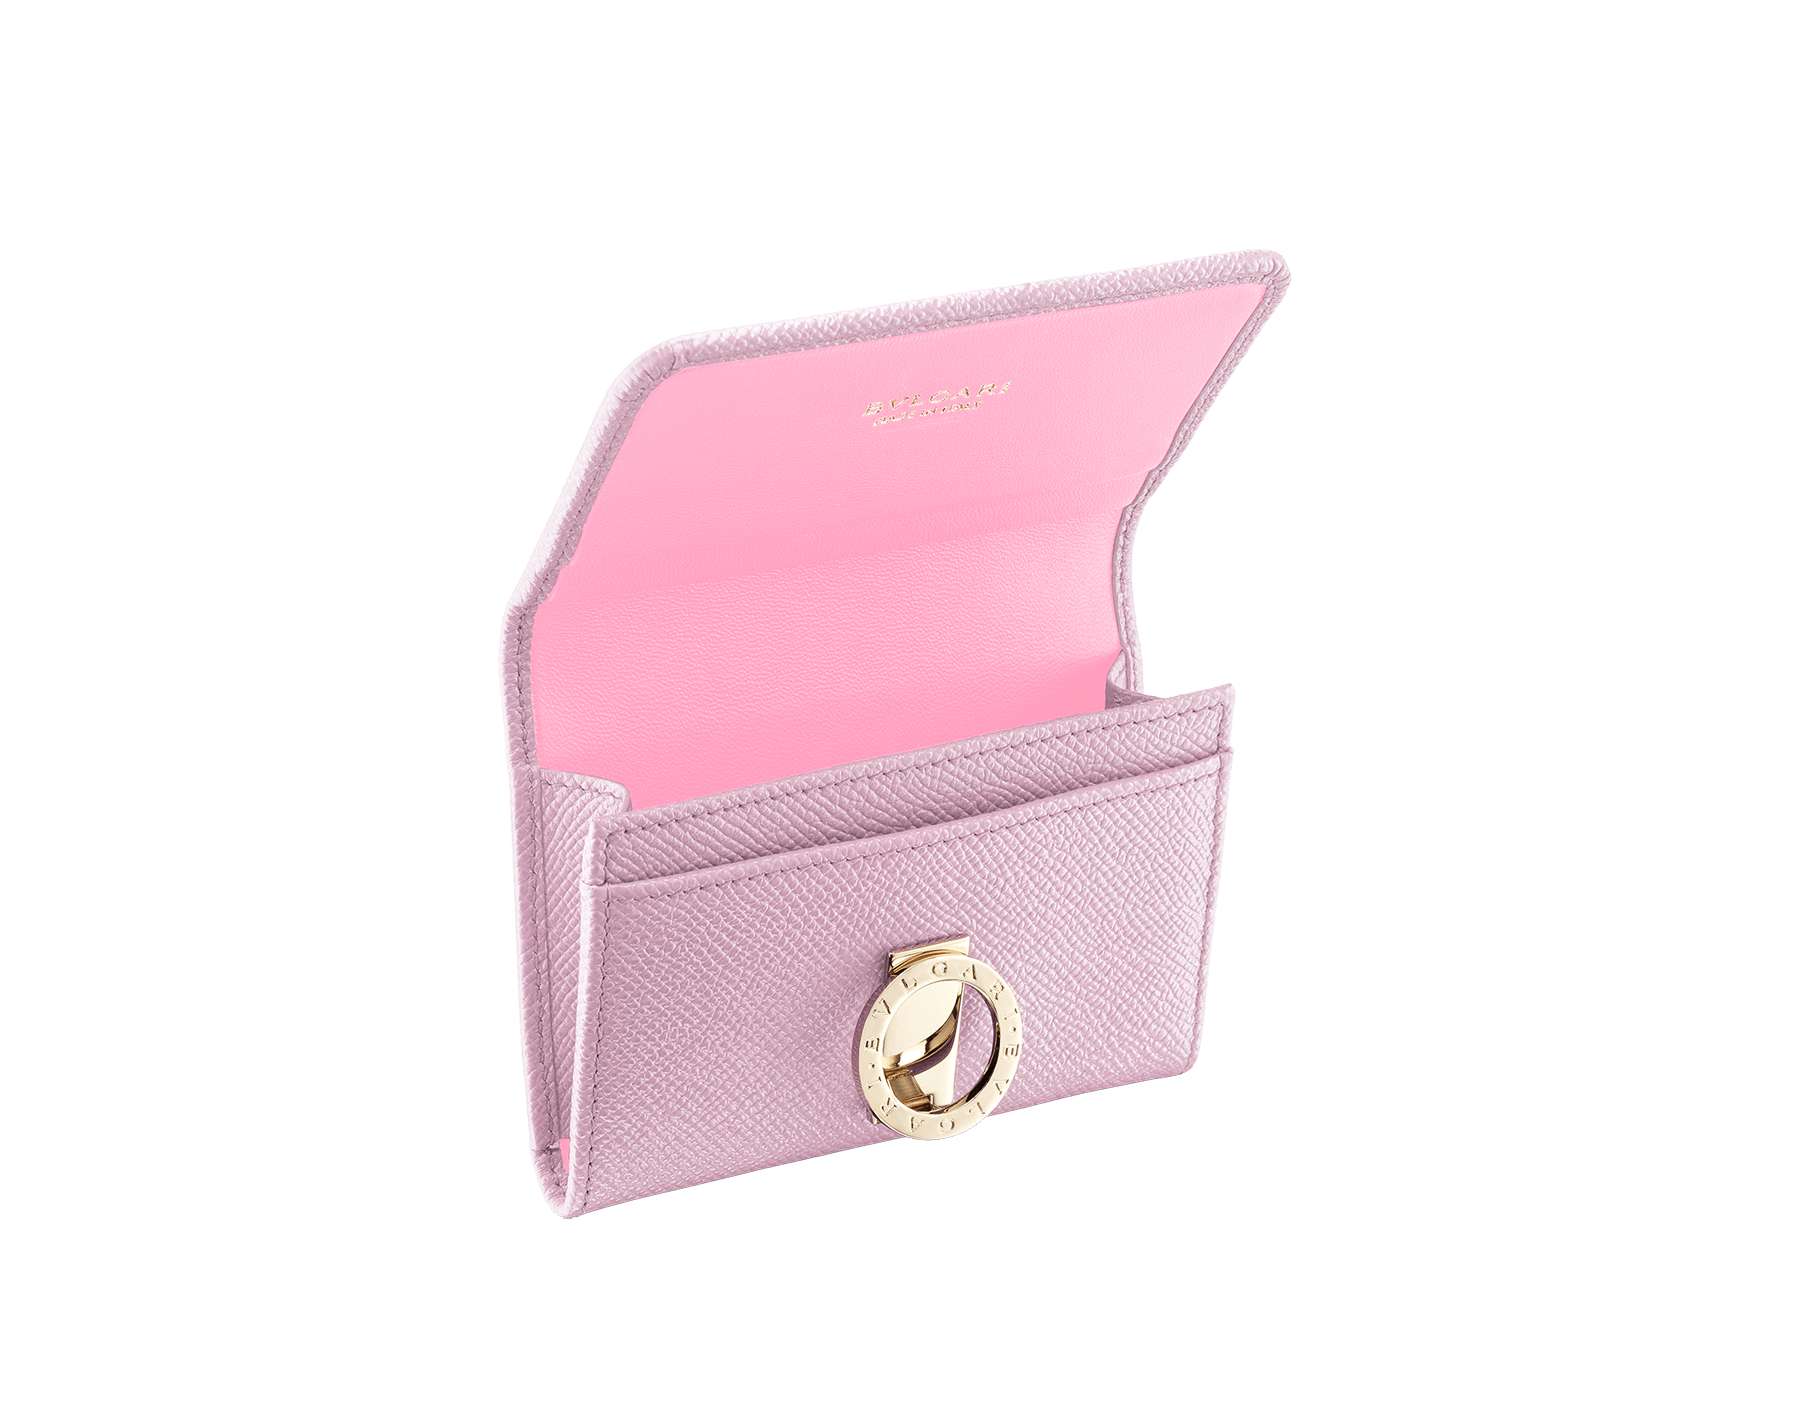 BVLGARI BVLGARI business card holder in rosa di francia bright grain calf leather and flamingo quartz nappa leather. Iconic logo clip closure in light gold plated brass. 289039 image 2